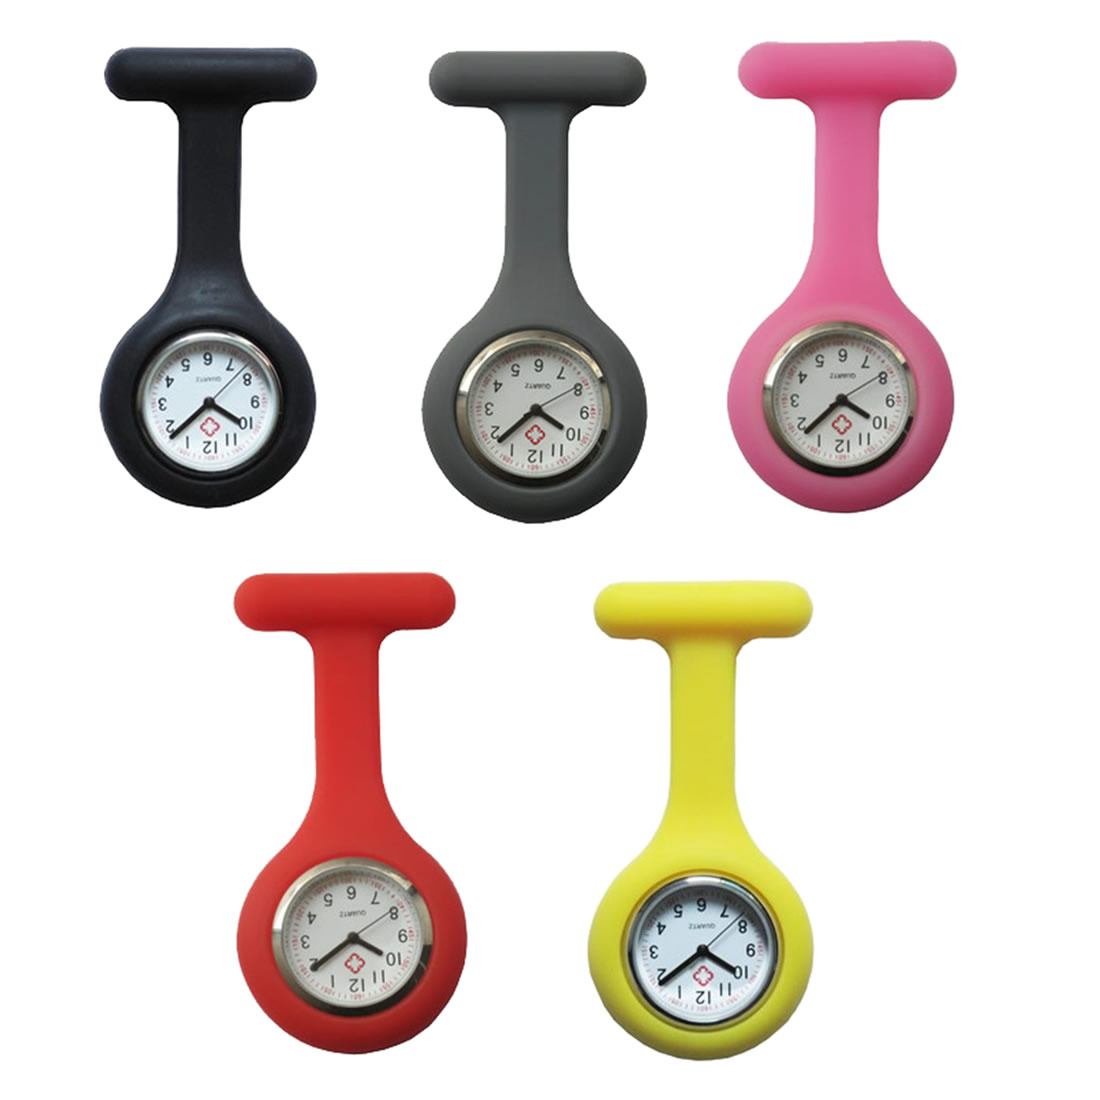 5PCs/Lot Pocket Watch Clip-On Fob Quartz Brooch Hanging Rubber Silicone Nurse Watch Fashion Casual Men Women Relogio Feminino